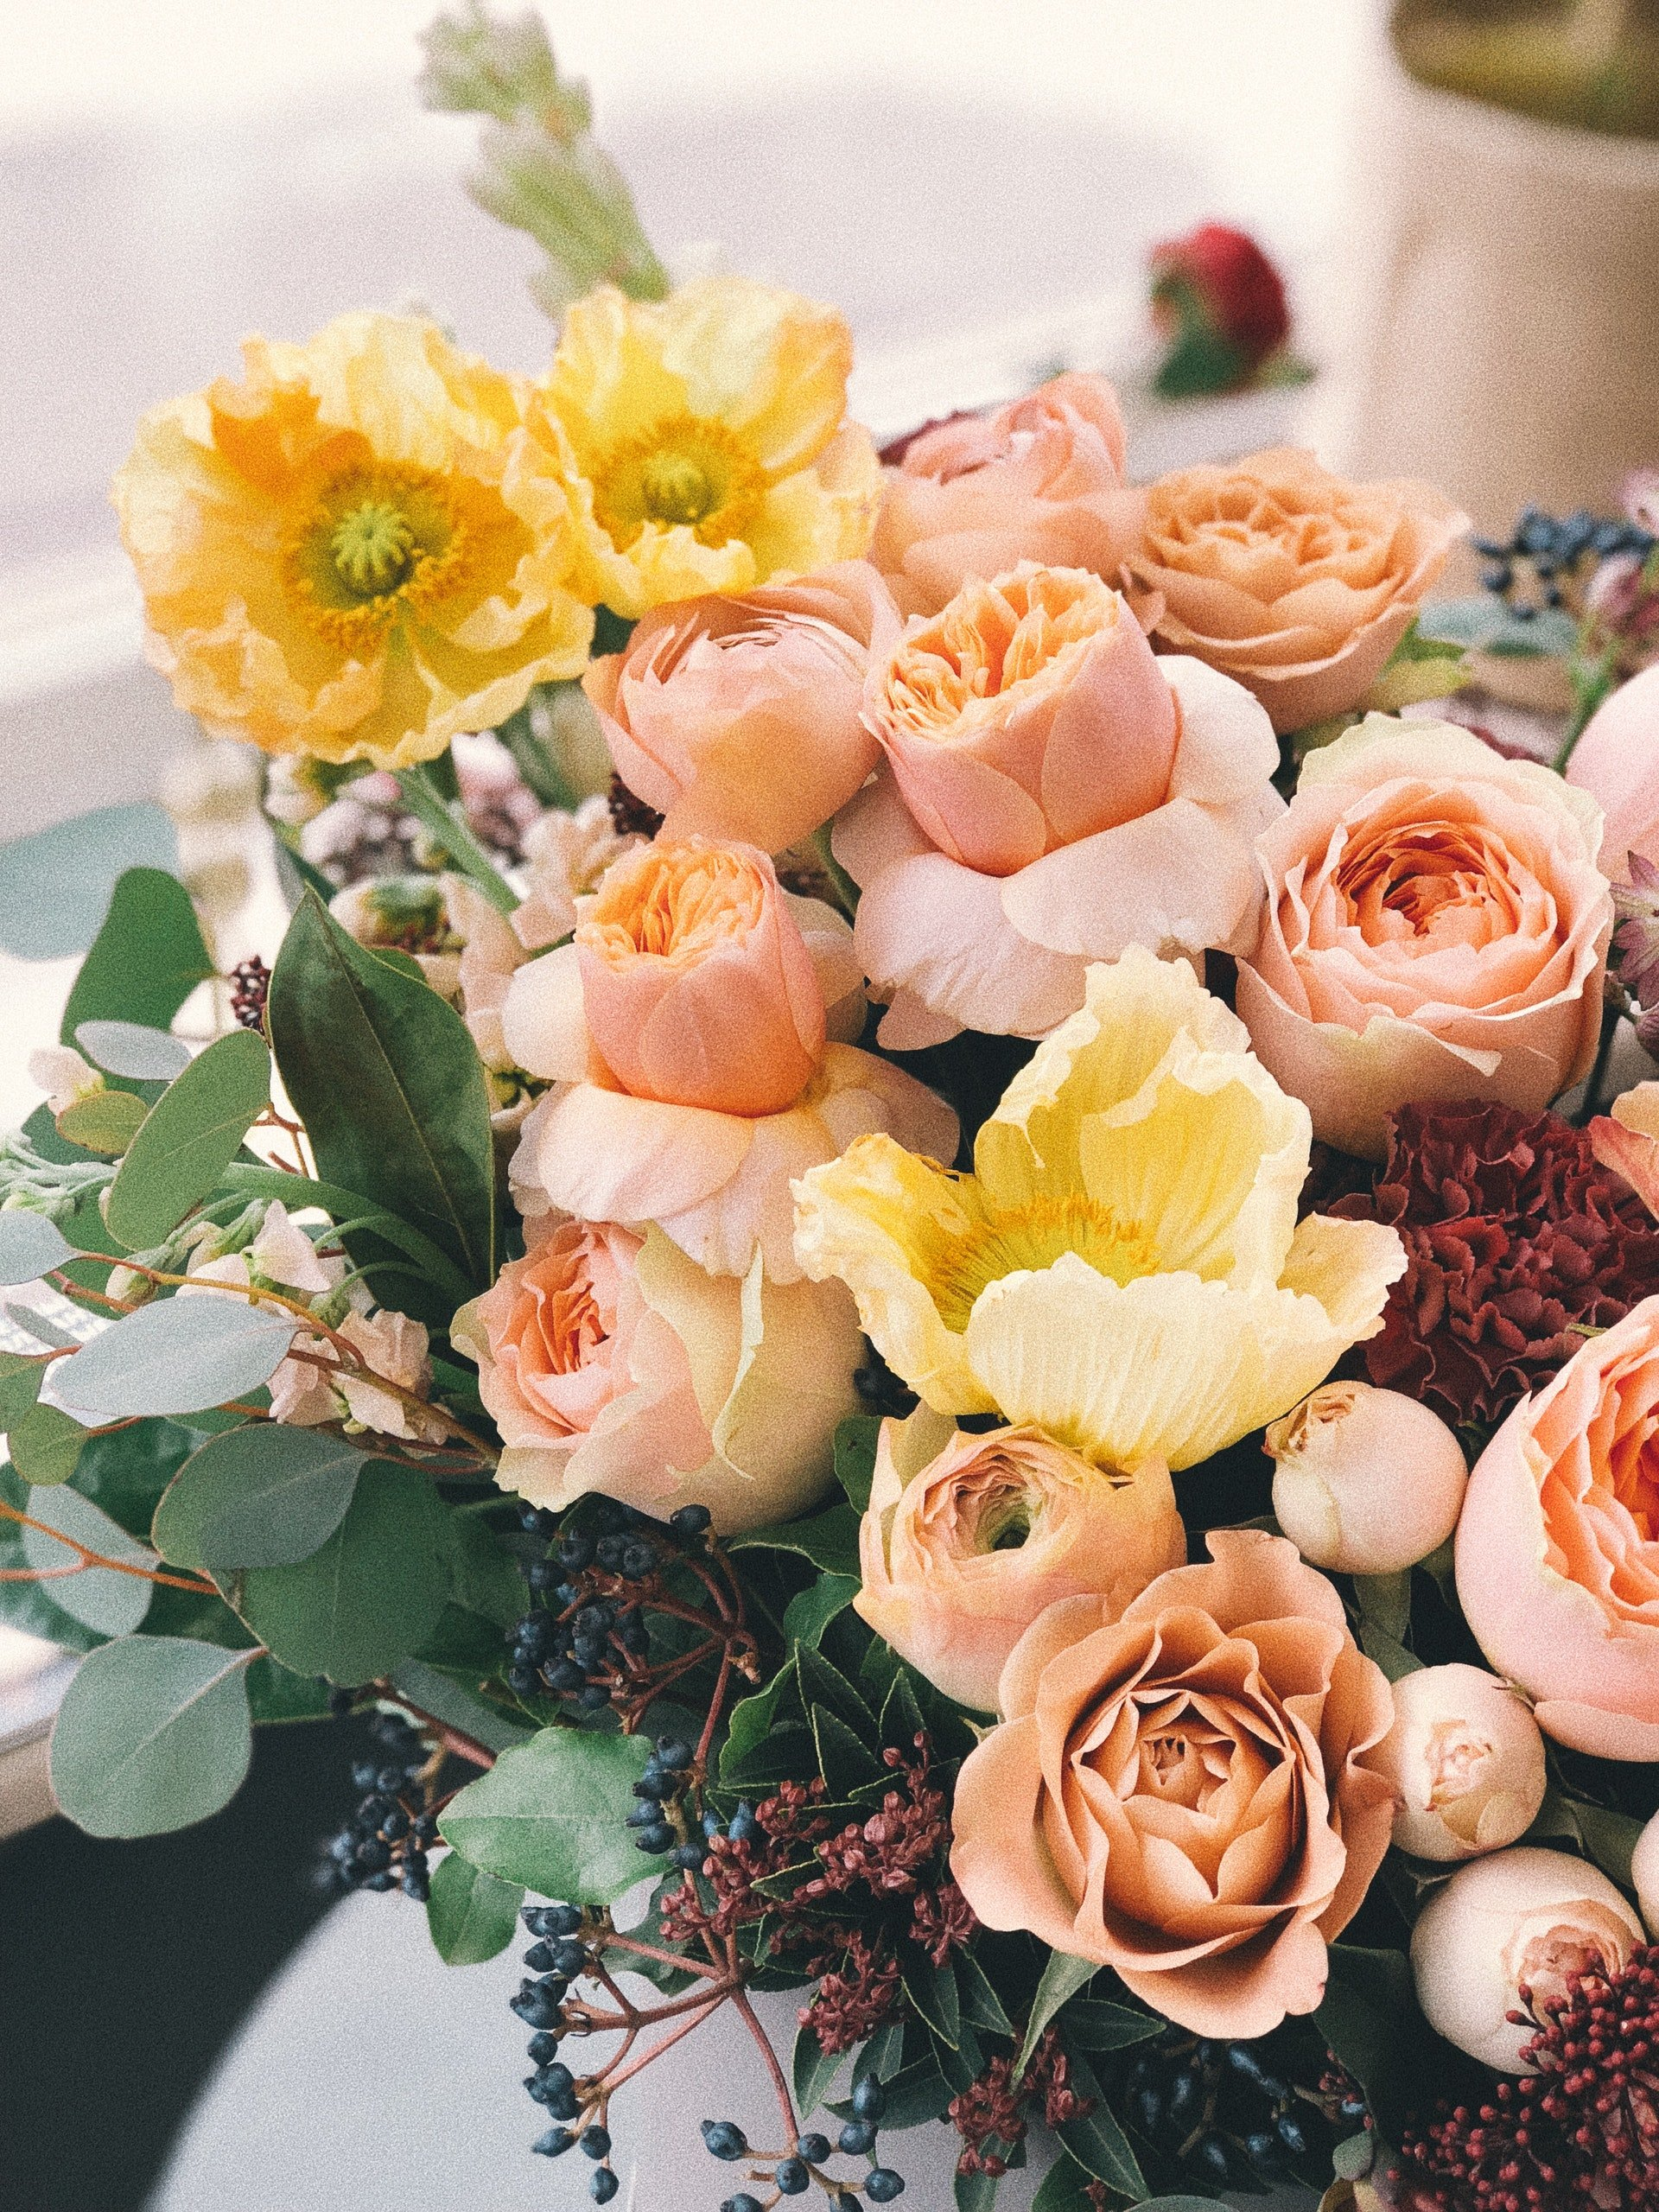 A bouquet of flowers | Photo: Pexels